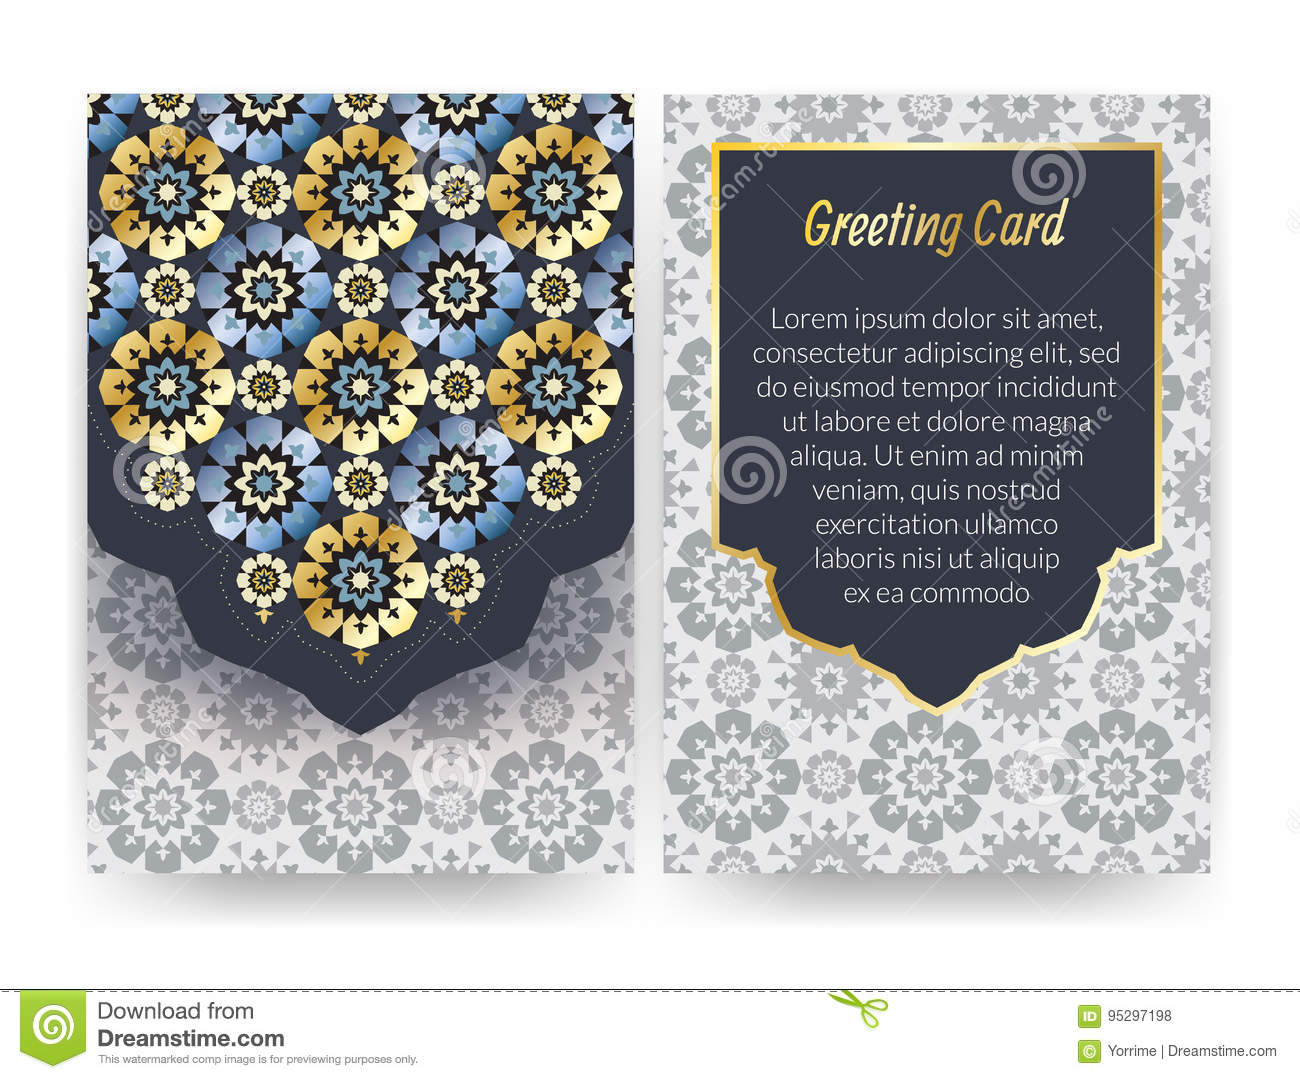 Greeting card with islamic pattern.